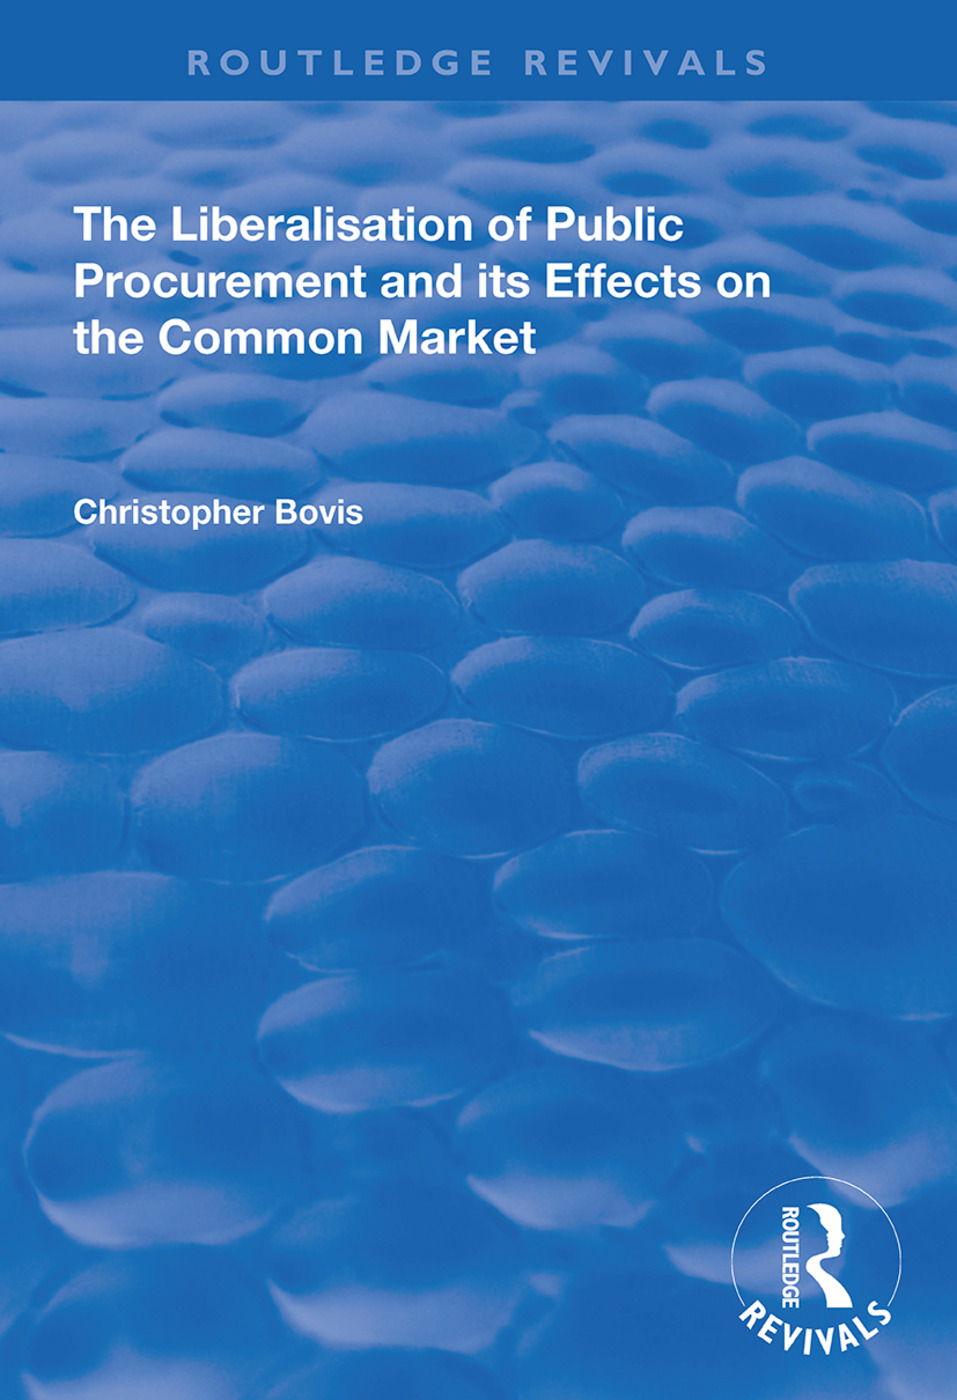 The Liberalisation of Public Procurement and its Effects on the Common Market book cover